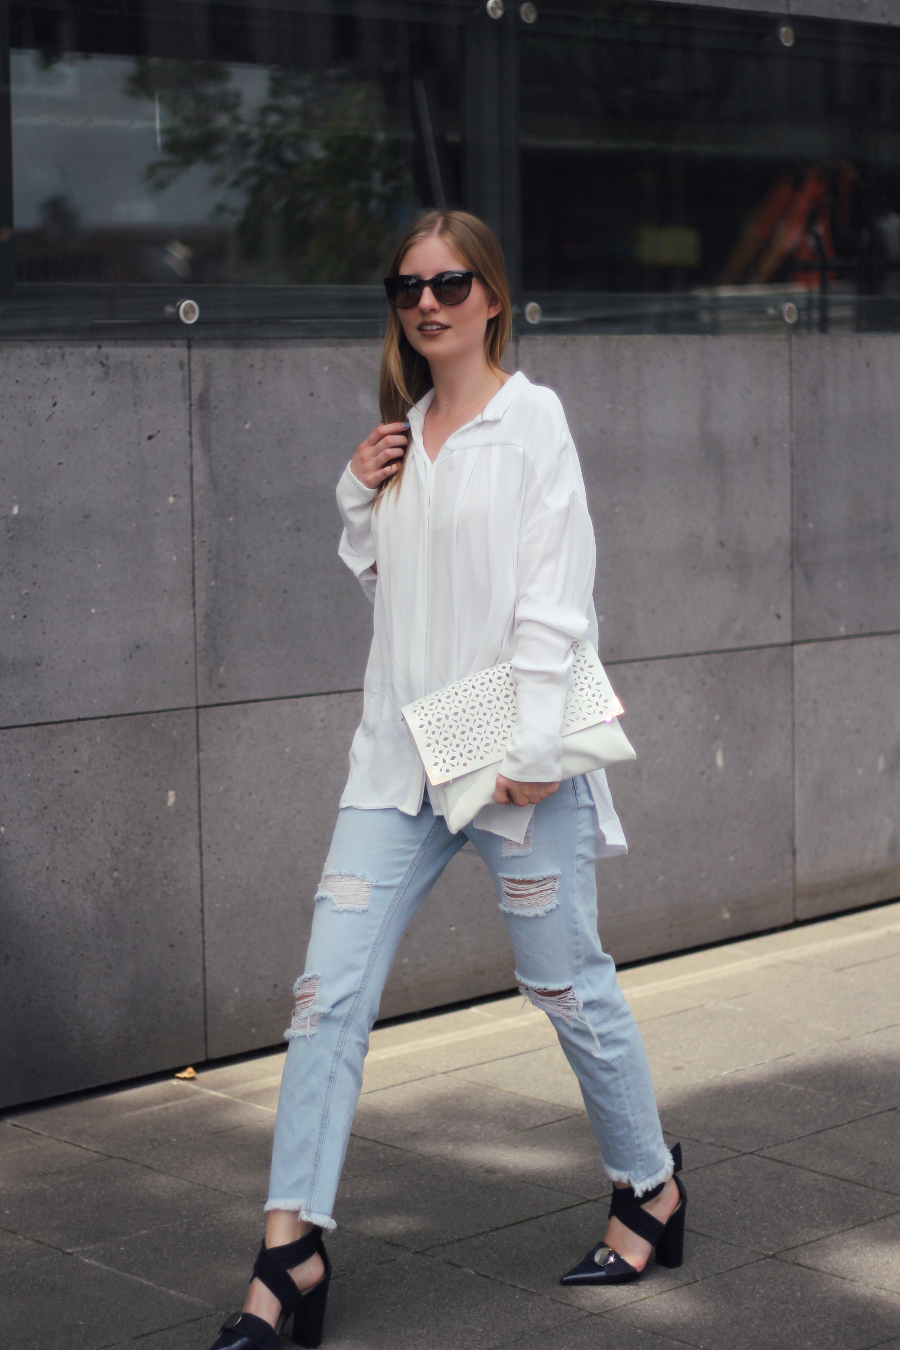 outfit everyday jeans shirt absatzschuhe uterque zara & other stories vogue frankfurt blog